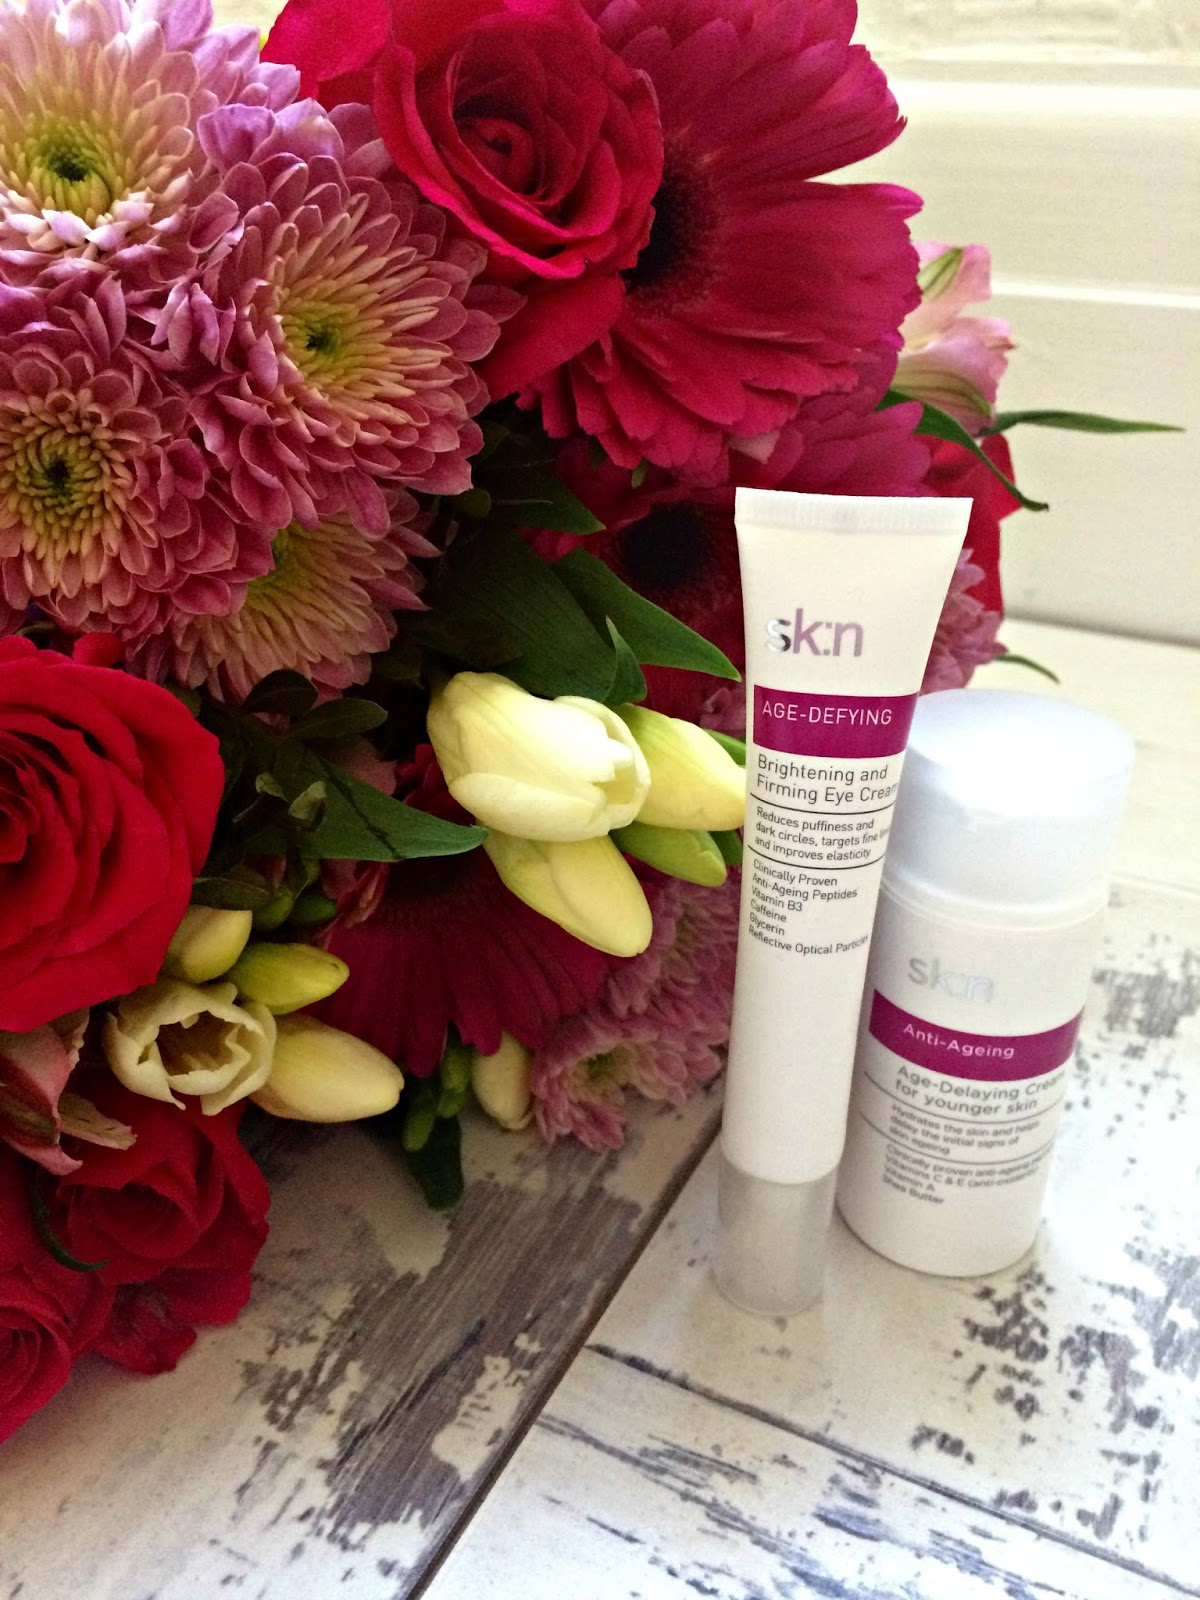 sk:n Anti-Ageing Age-Delaying Cream for younger skin and sk:n age-defying brightening & firming eye cream